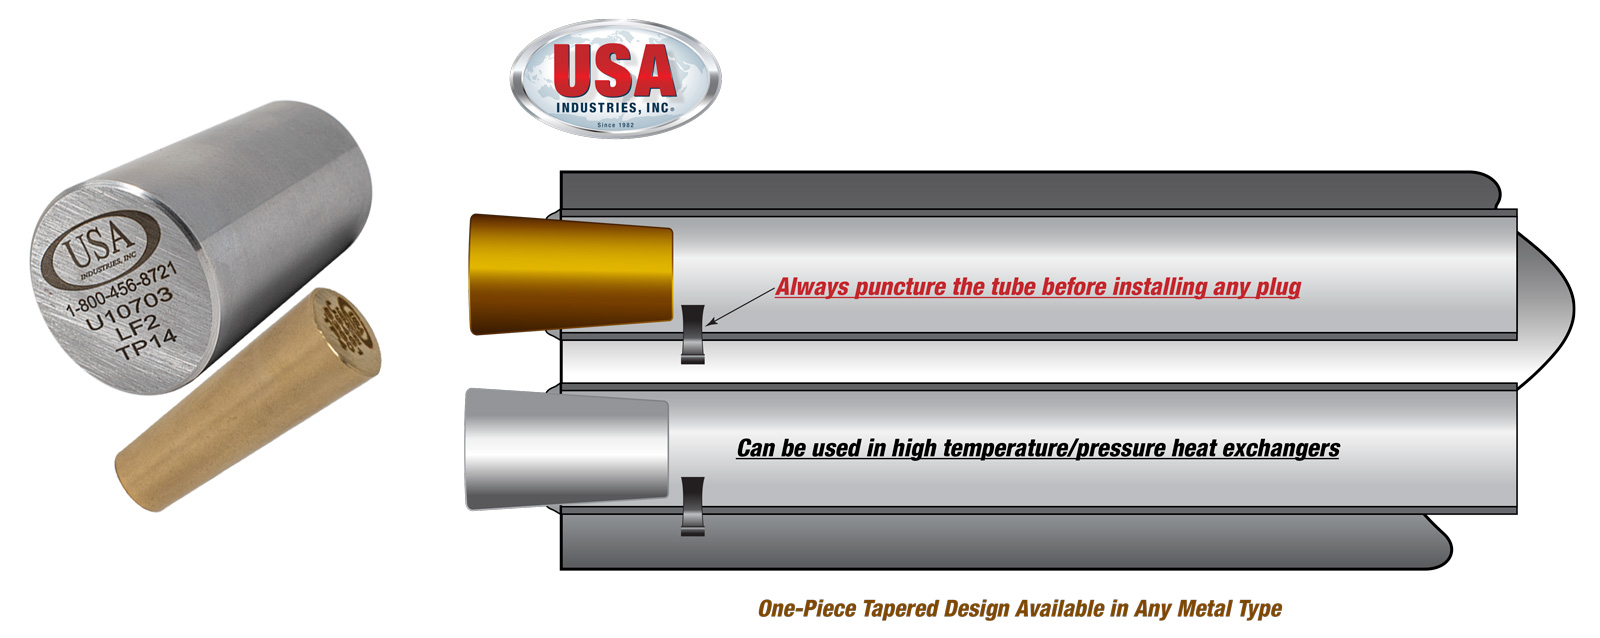 USA-Industries-Inc-Metal-Tapered-Illustration-Added-v3